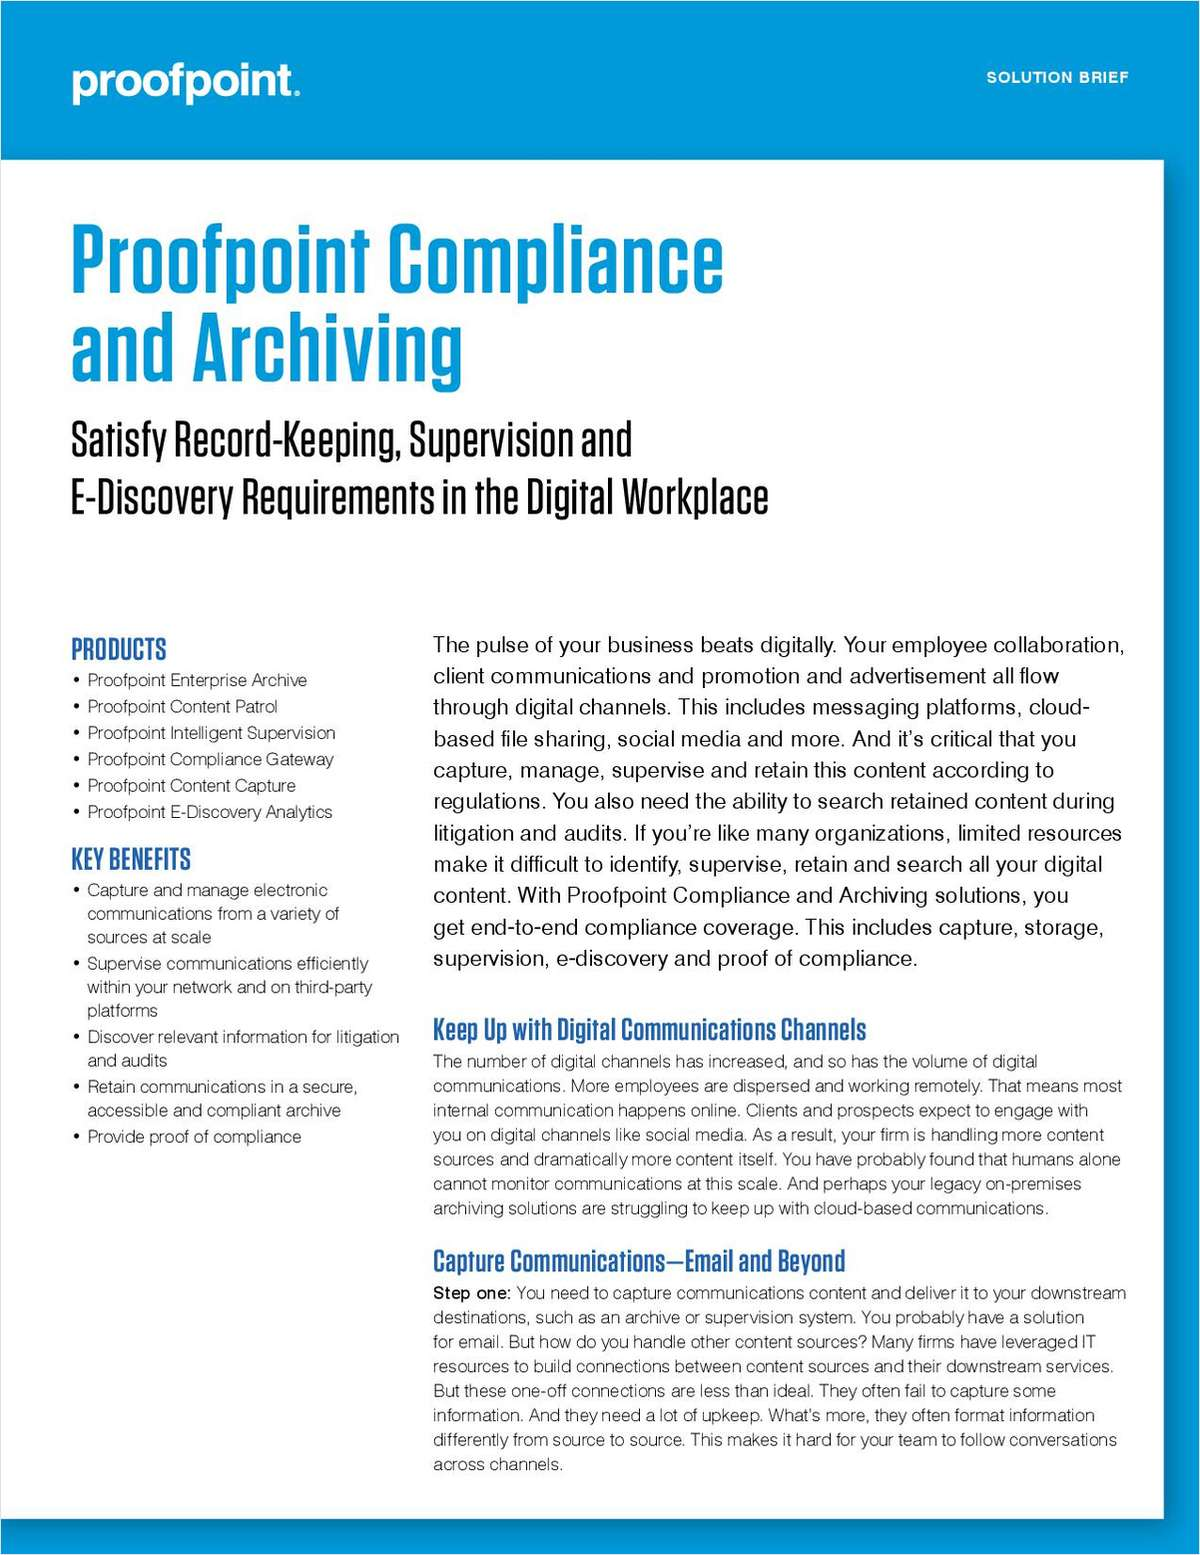 Are you struggling to keep up with and capture your company's communications? Download this solution brief and learn how to satisfy record-keeping, supervision and e-discovery requirements in the digital workplace.